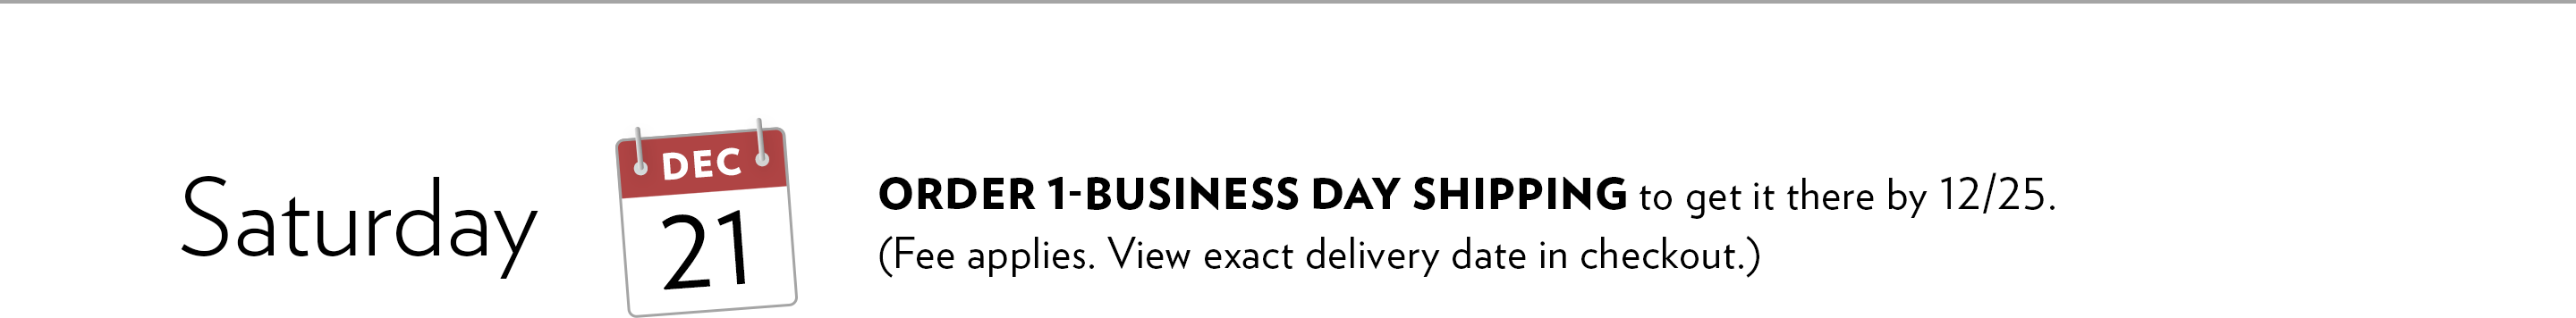 On December 21 order 1-business day shipping to get it there by 12/25. Fee applies. View exact delivery date at checkout.